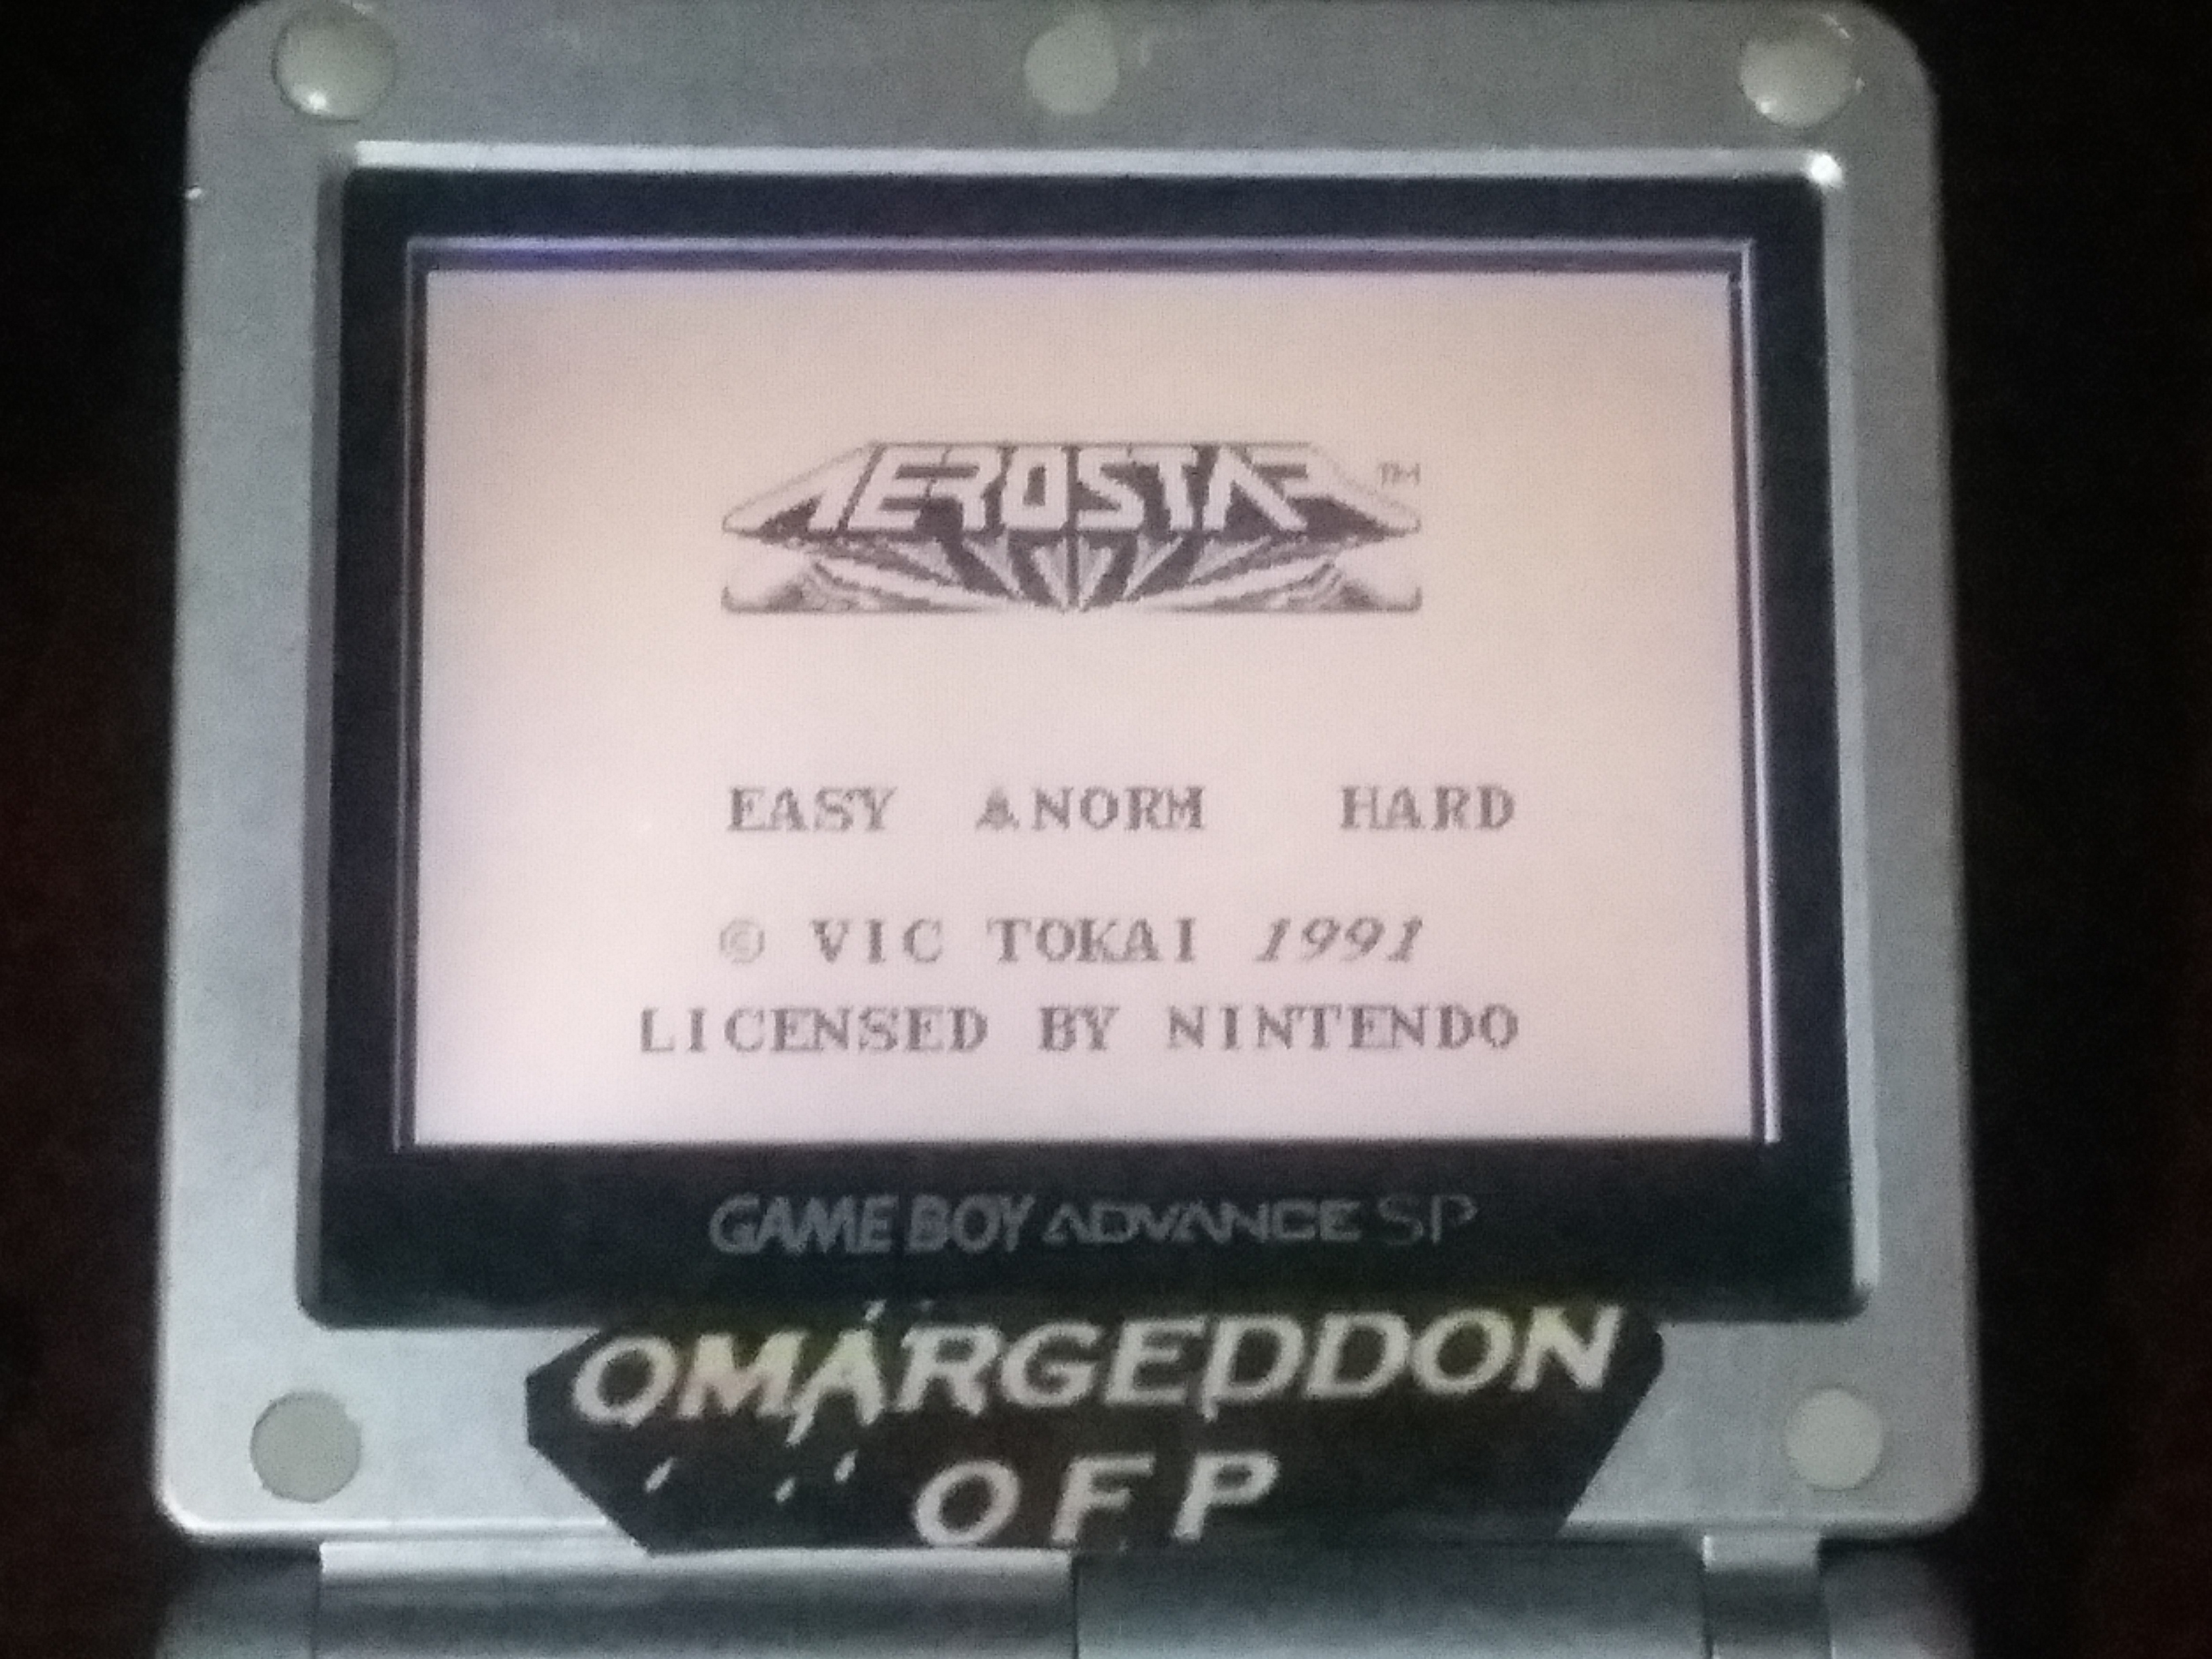 omargeddon: Aero Star [Normal] (Game Boy) 44,900 points on 2018-01-17 13:52:25